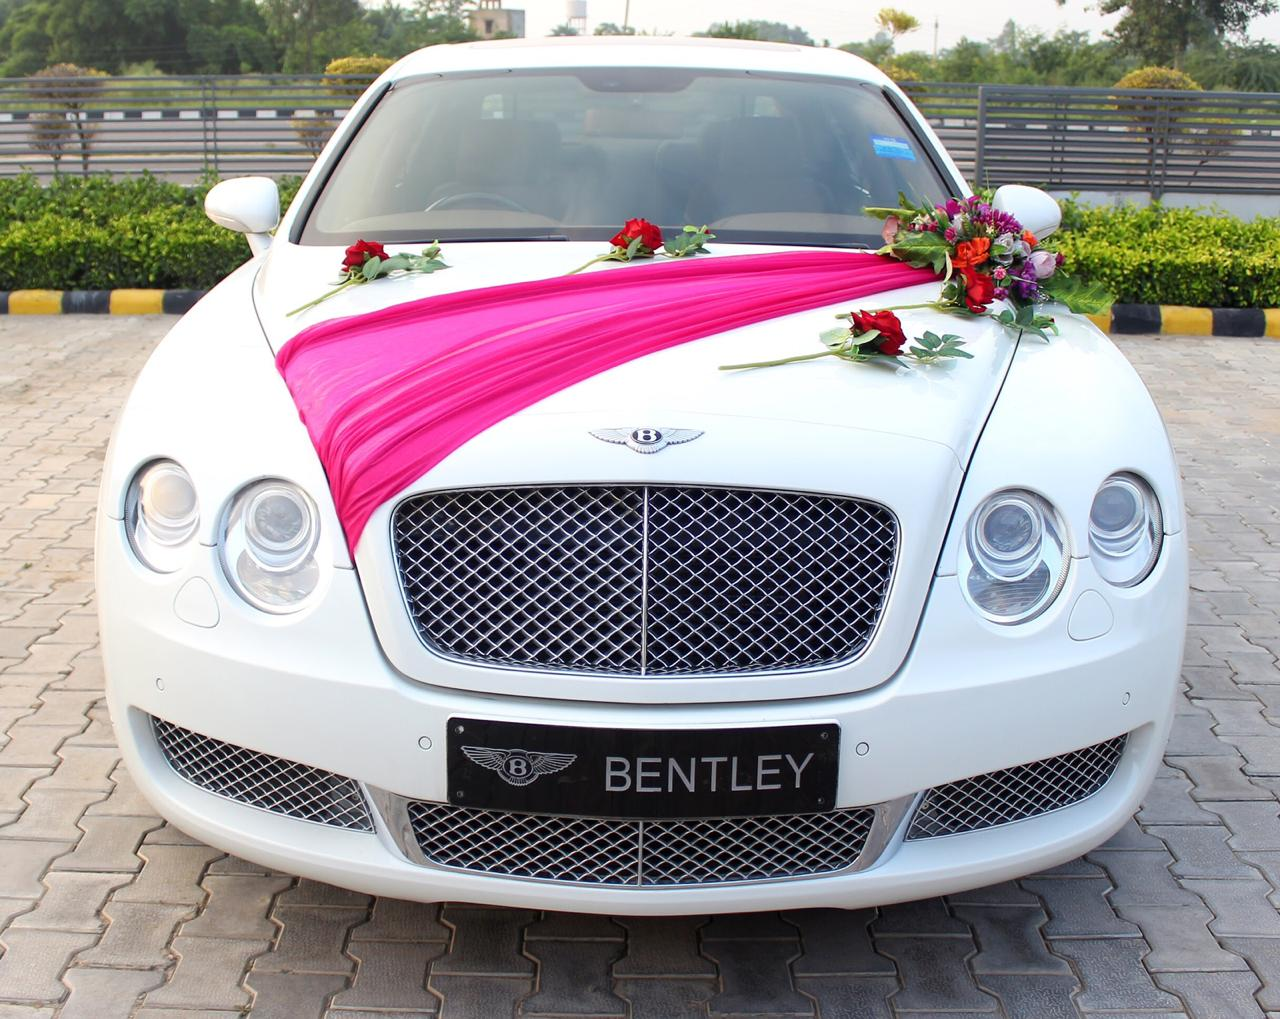 BENTLEY AND G-WAGON MOST TRUST-ABLE BRAND HIRE FOR WEDDING